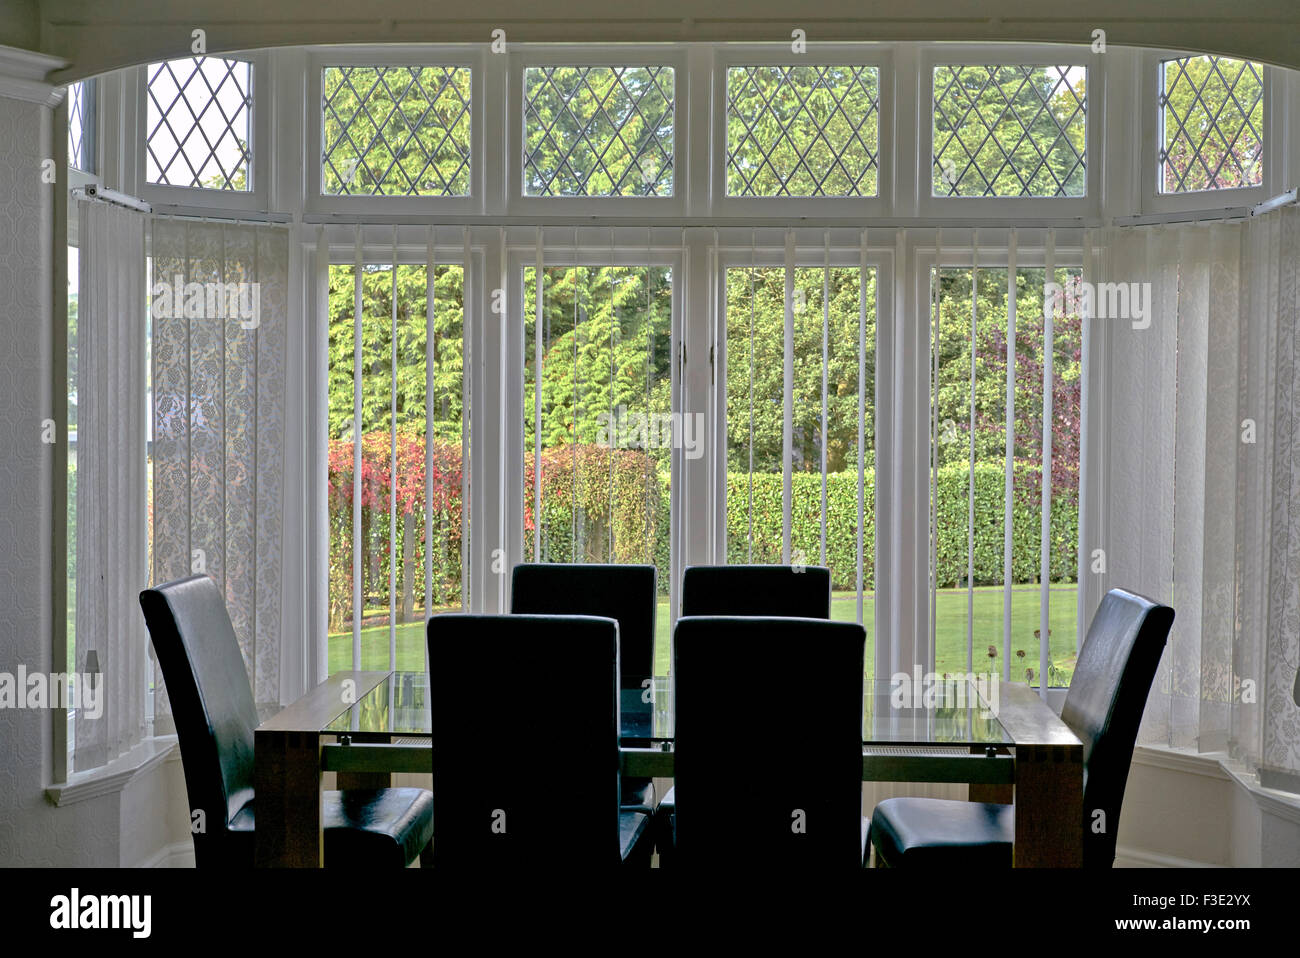 Dining room view through large leaded light bay windows of country gardens. Cumbria England UK - Stock Image